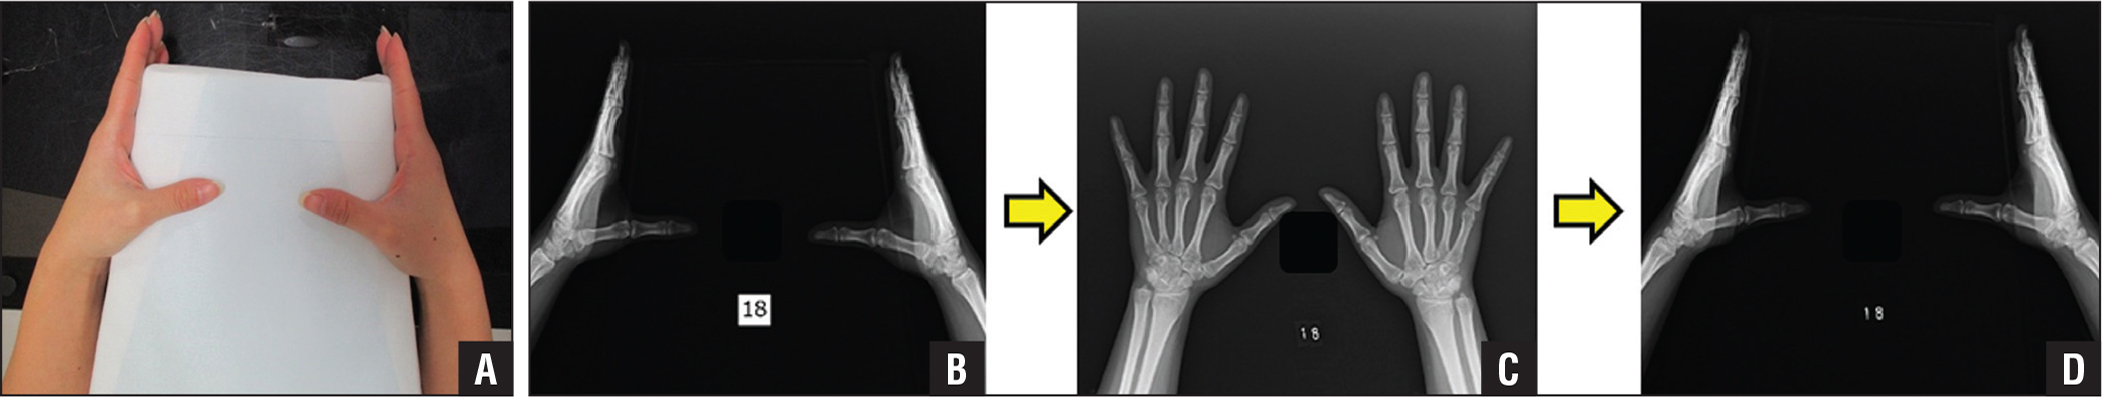 Photograph showing the position of the box and the subject's thumbs (A). Lateral radiograph of the bilateral wrists and hands showing the hand position during the first measurement (B). Anteroposterior radiograph of the bilateral hands showing the transition position (C). Lateral radiograph showing the position during the second measurement (D).